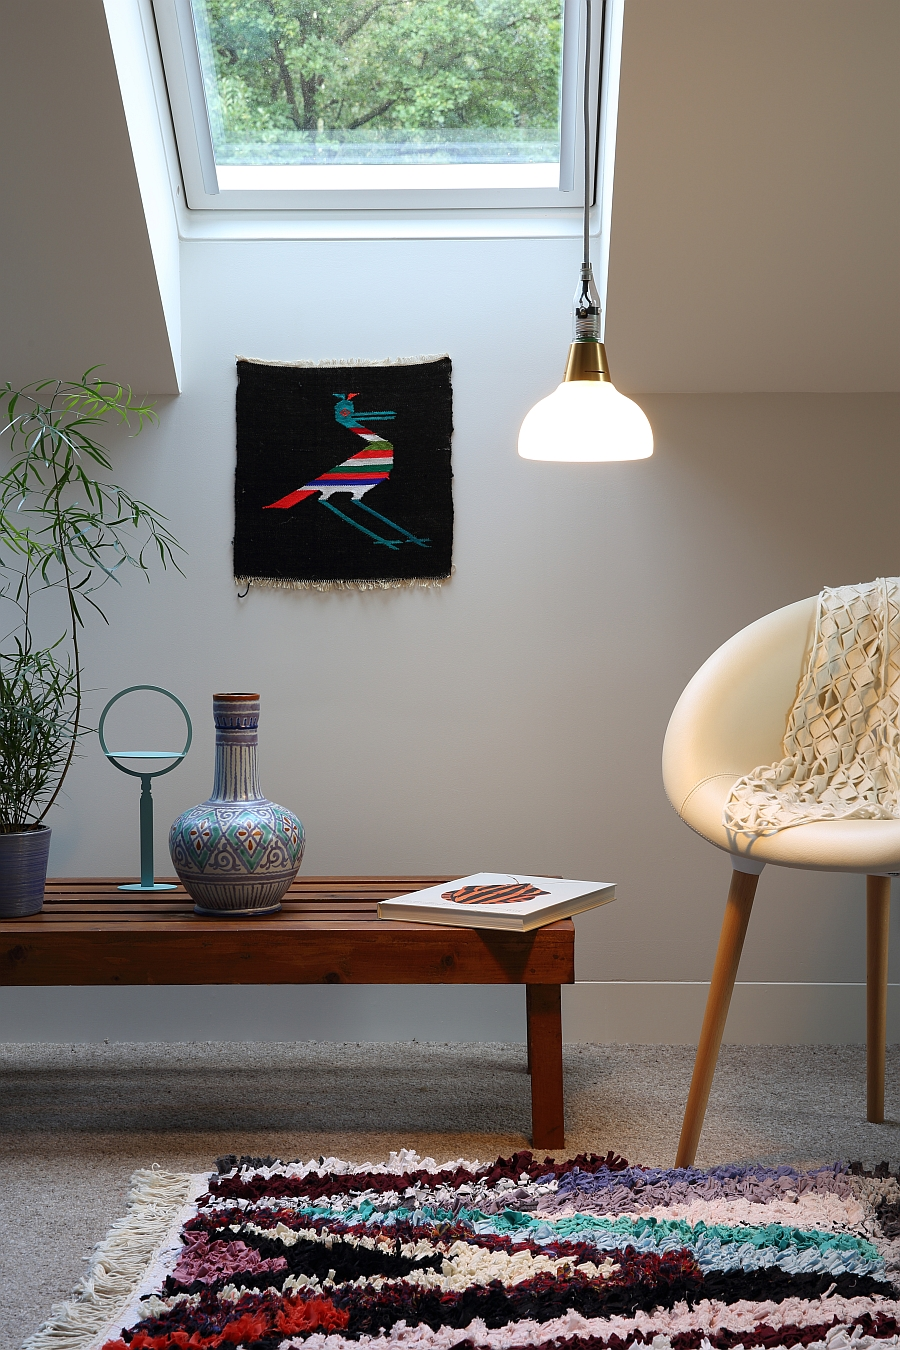 Booo combines the light bulb and the lamp shade into one!